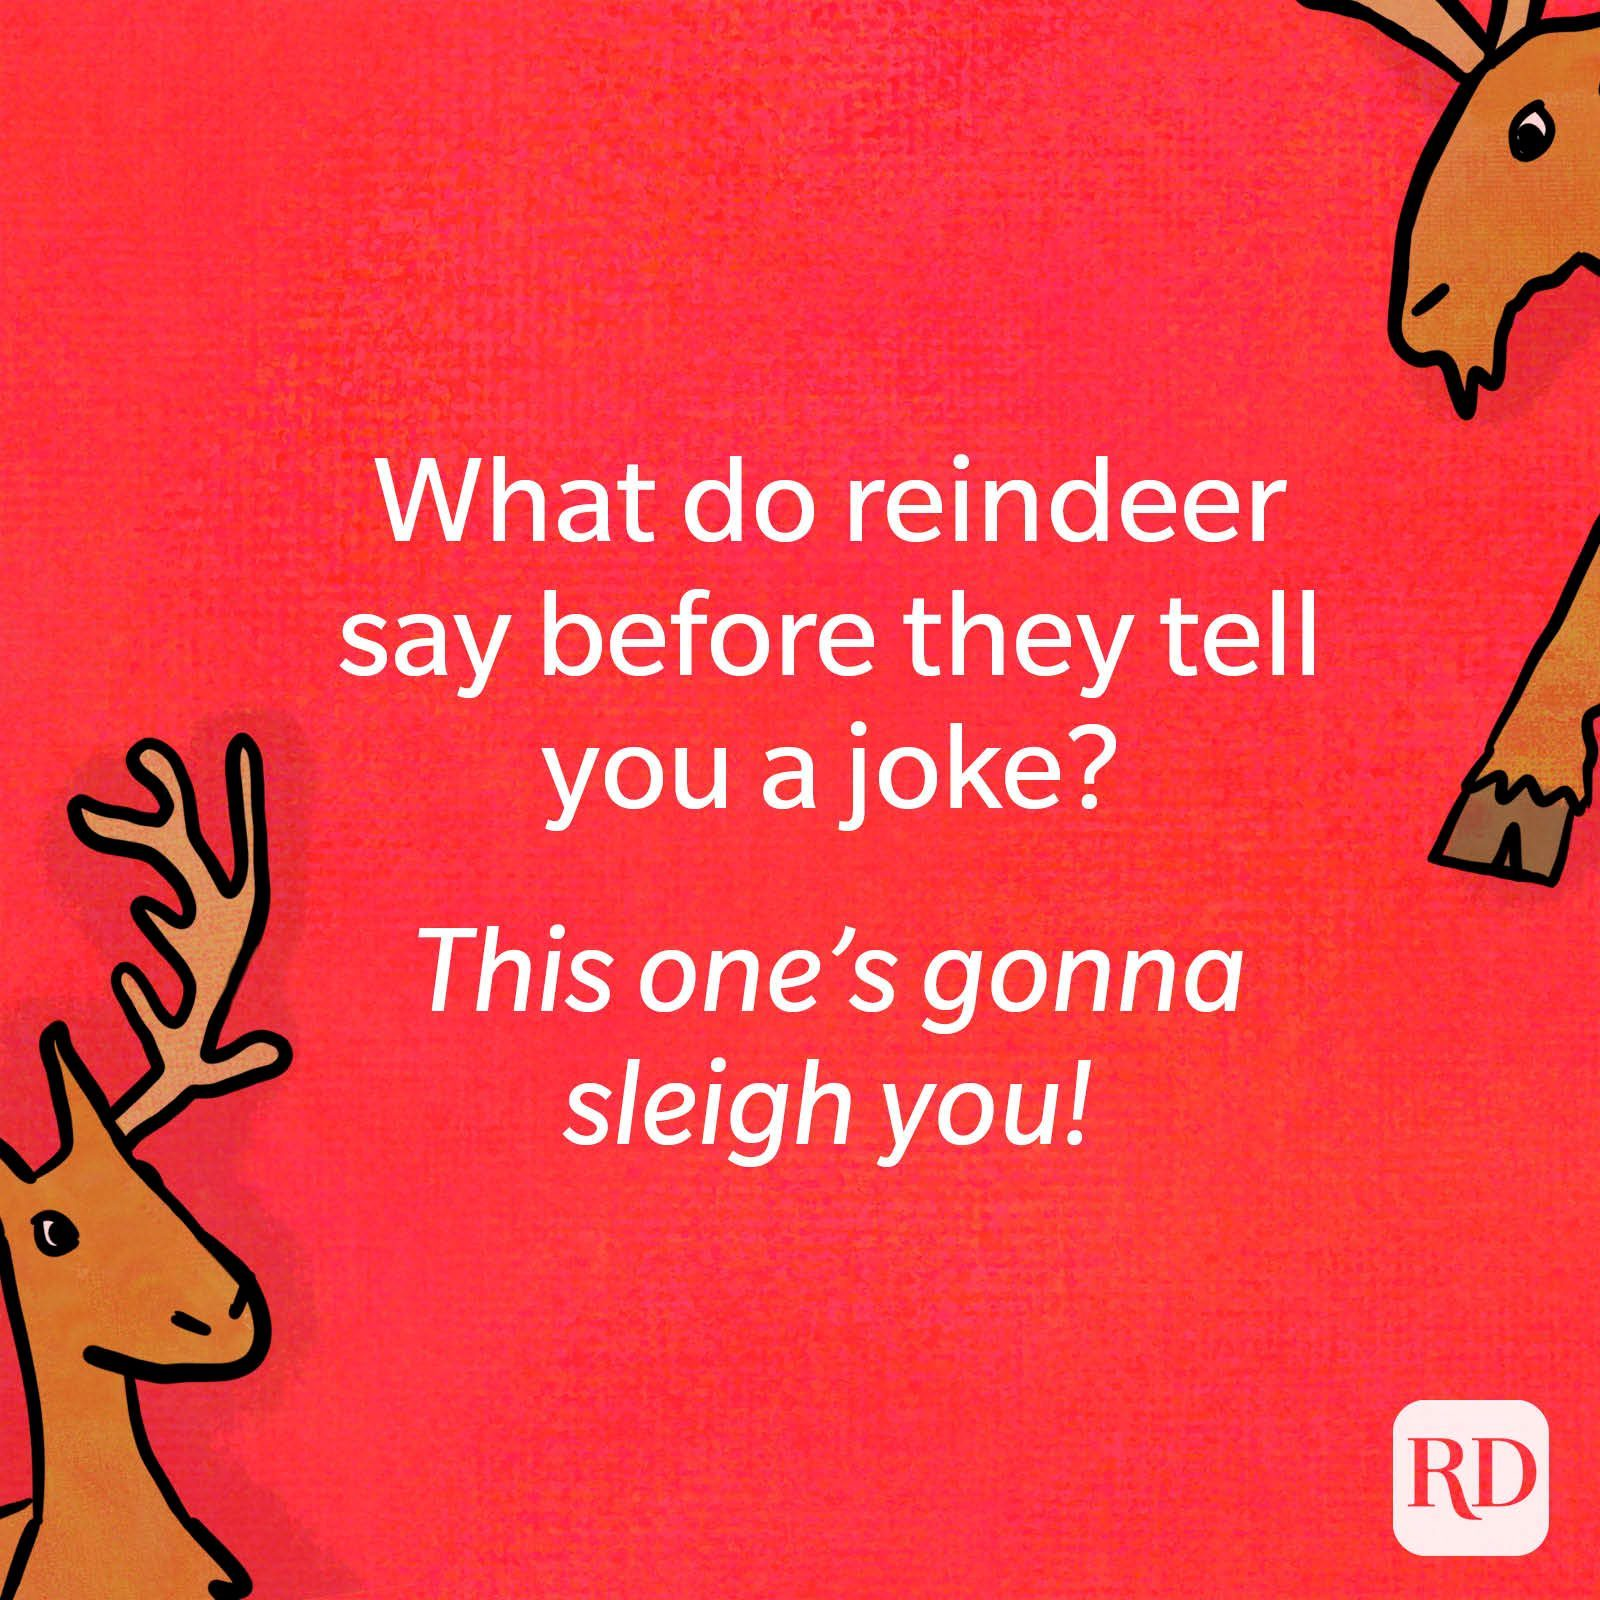 What do reindeer say before they tell you a joke?